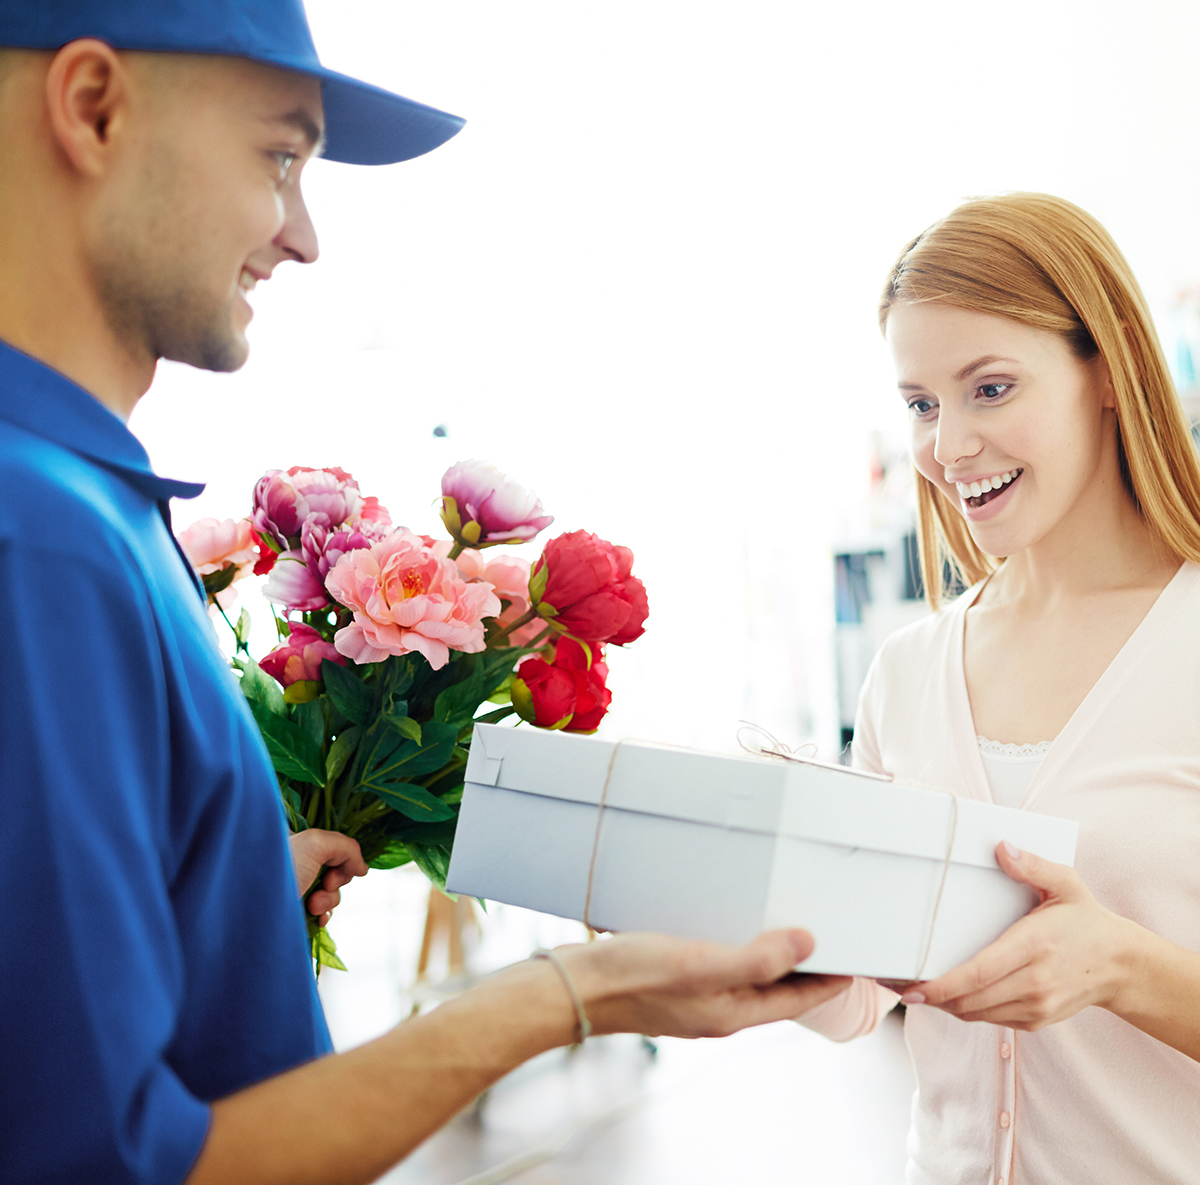 Image of a man handing a gift box and bouquet to a woman.